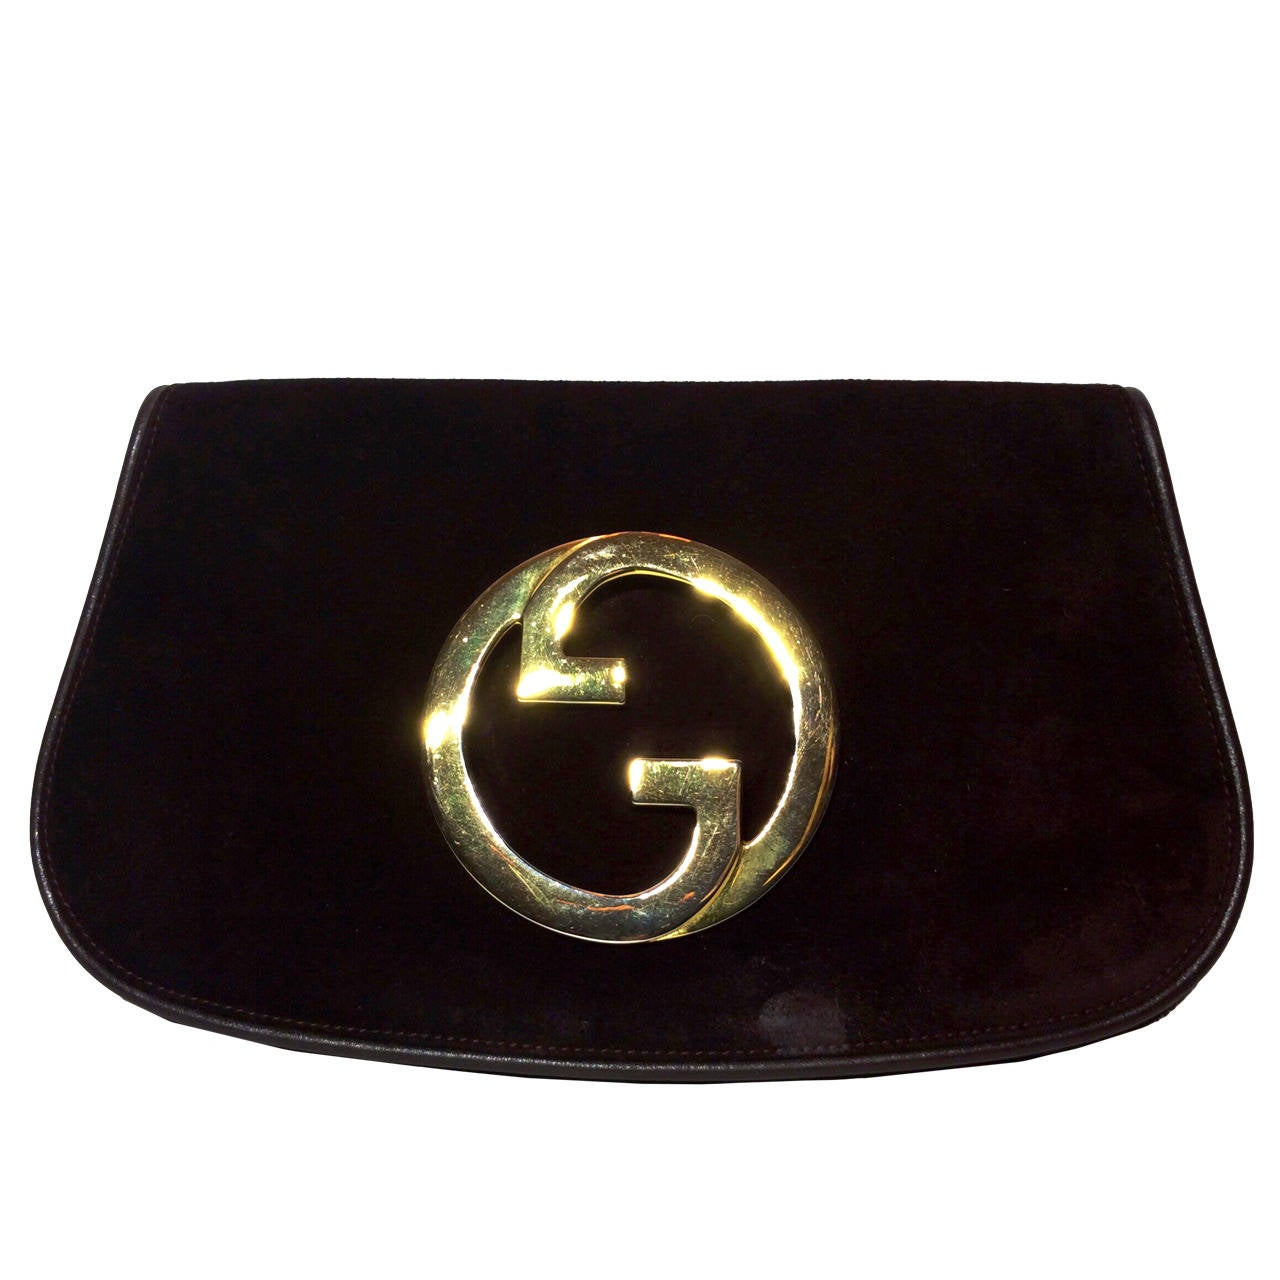 vintage 1973 gucci blondie chocolate suede flap clutch at 1stdibs